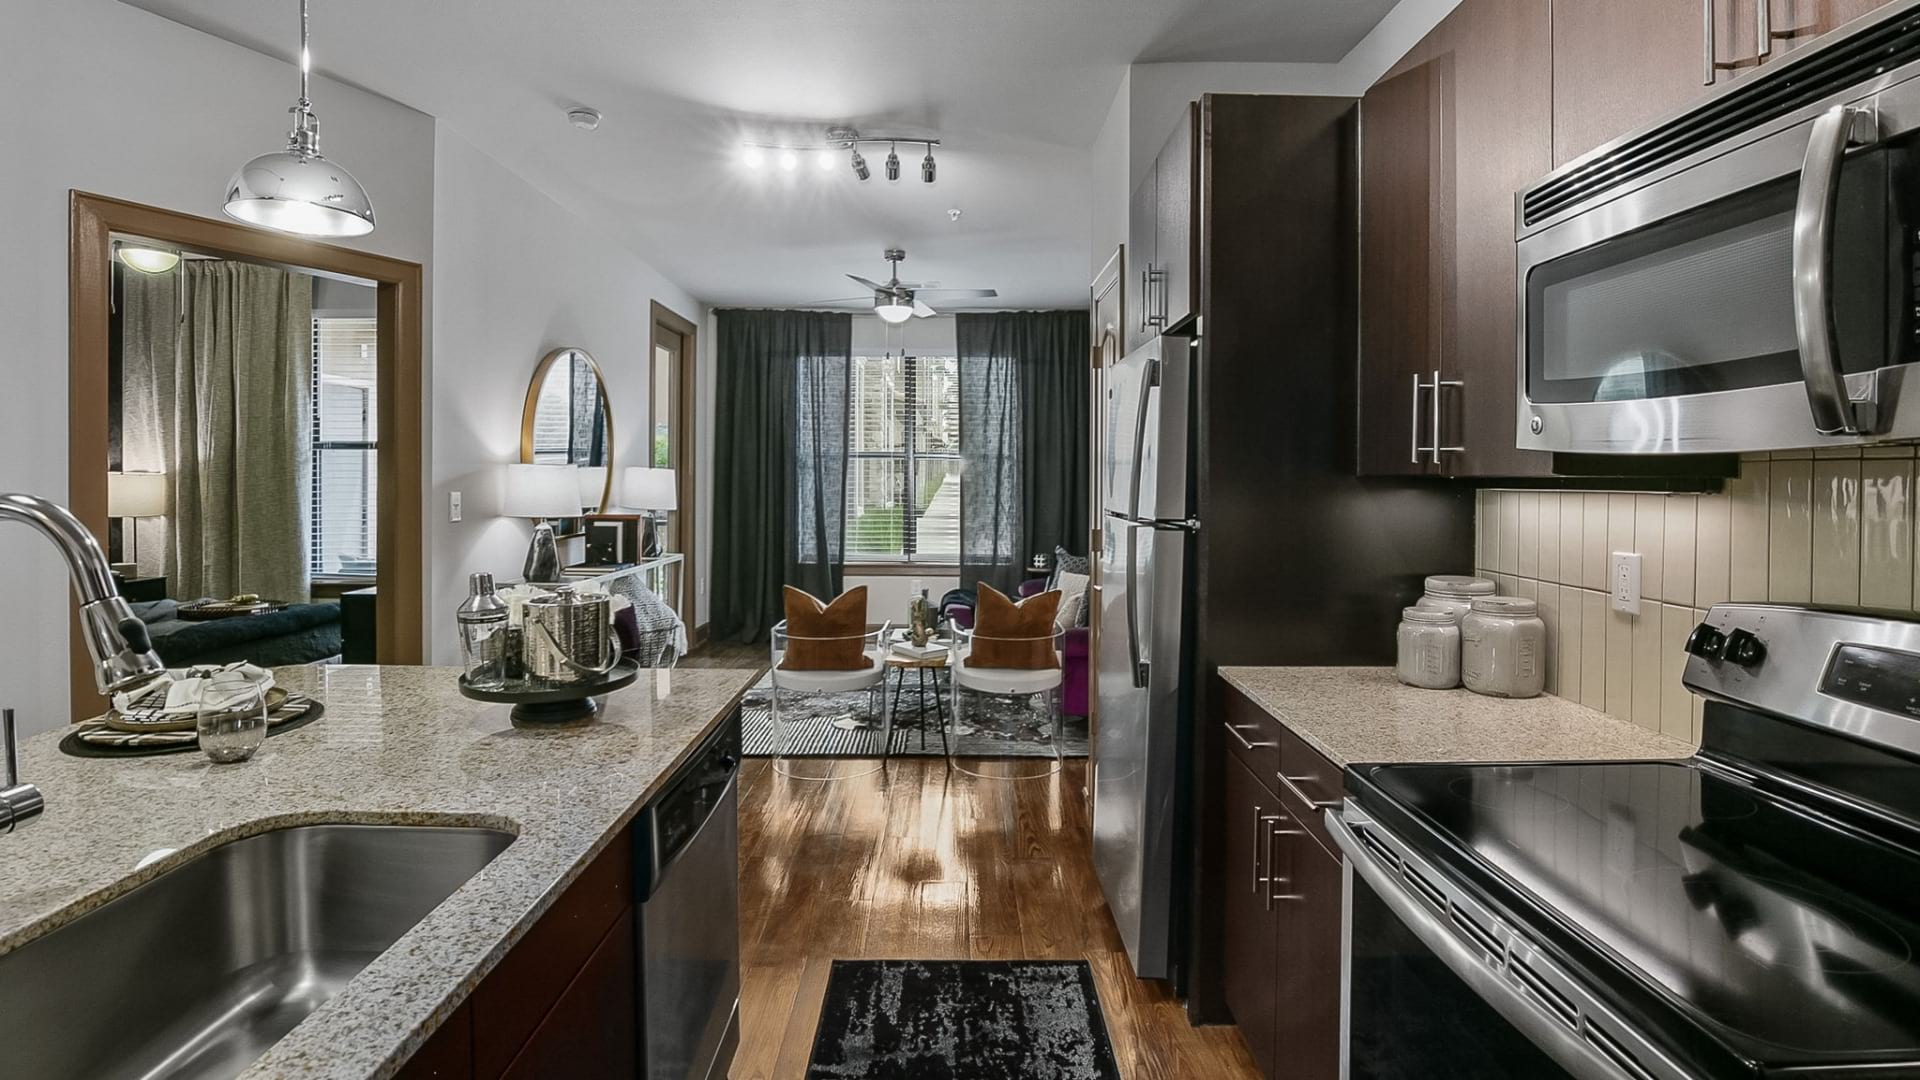 Kitchen with stainless steel appliances at our apartments for rent in Frisco, TX